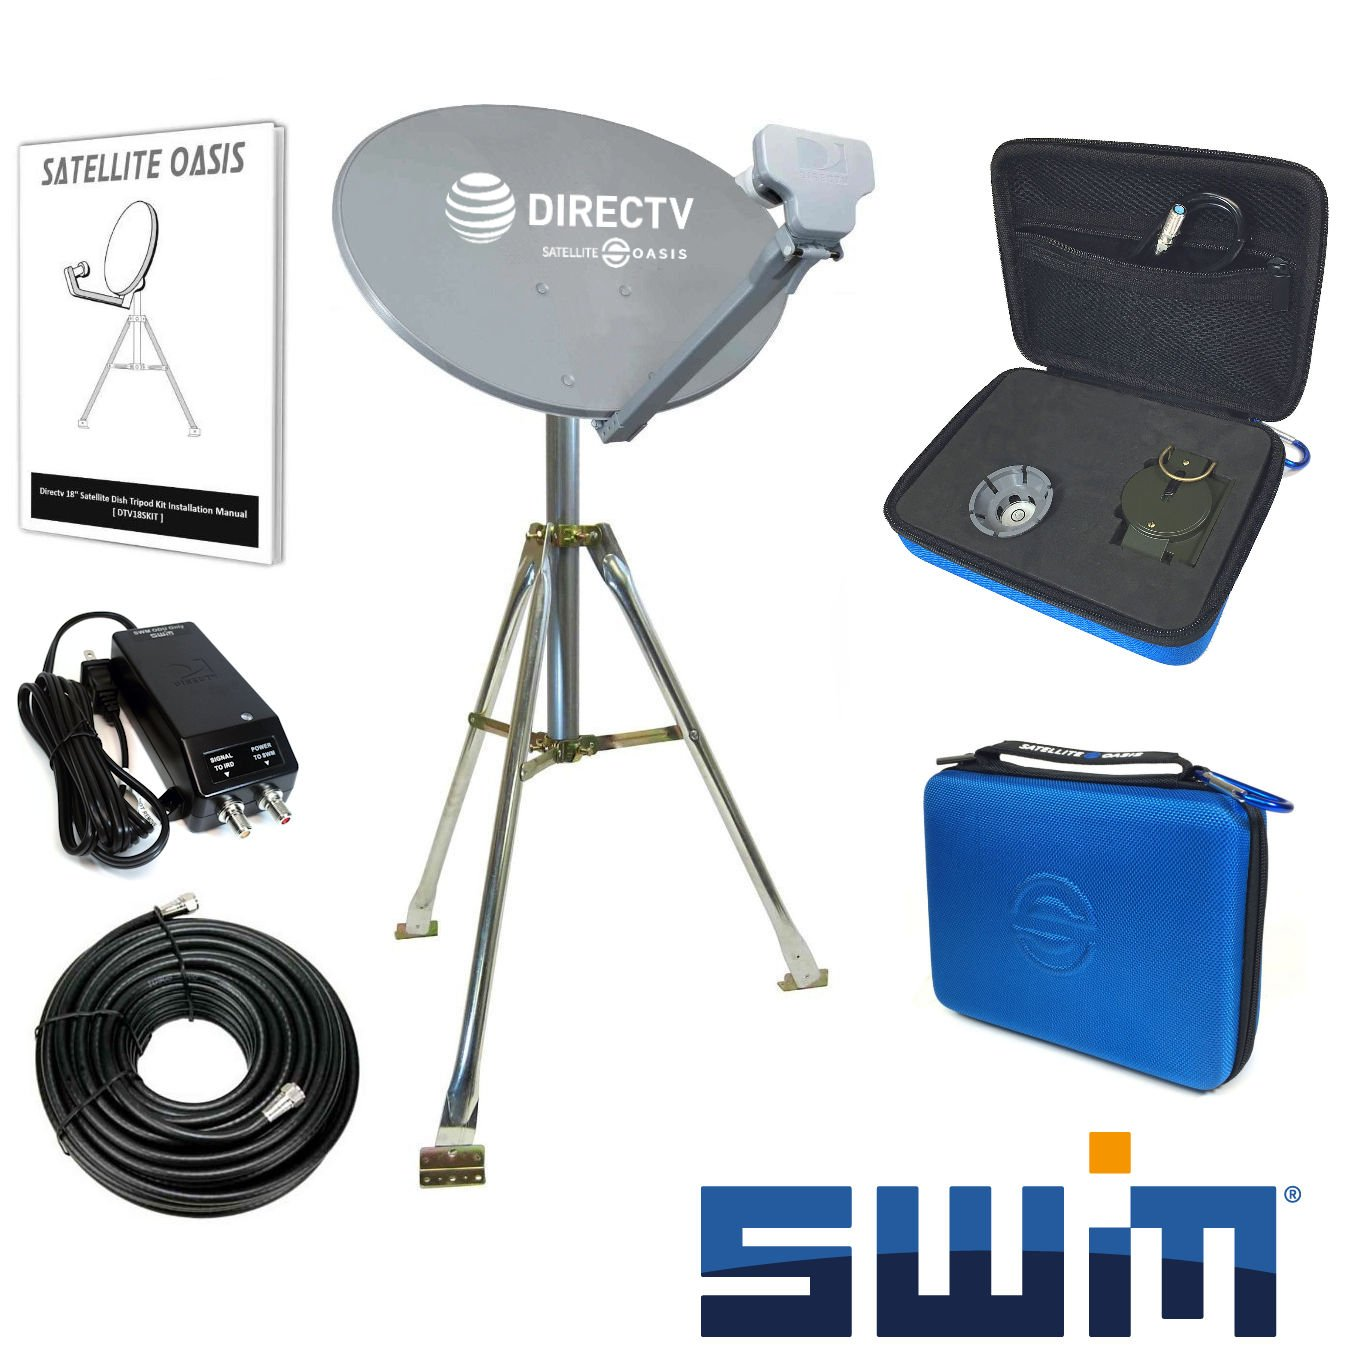 71Q2 4uWEnL._SL1370_ amazon com directv swim mobile rv portable satellite dish tripod direct tv satellite dish wiring diagram at n-0.co